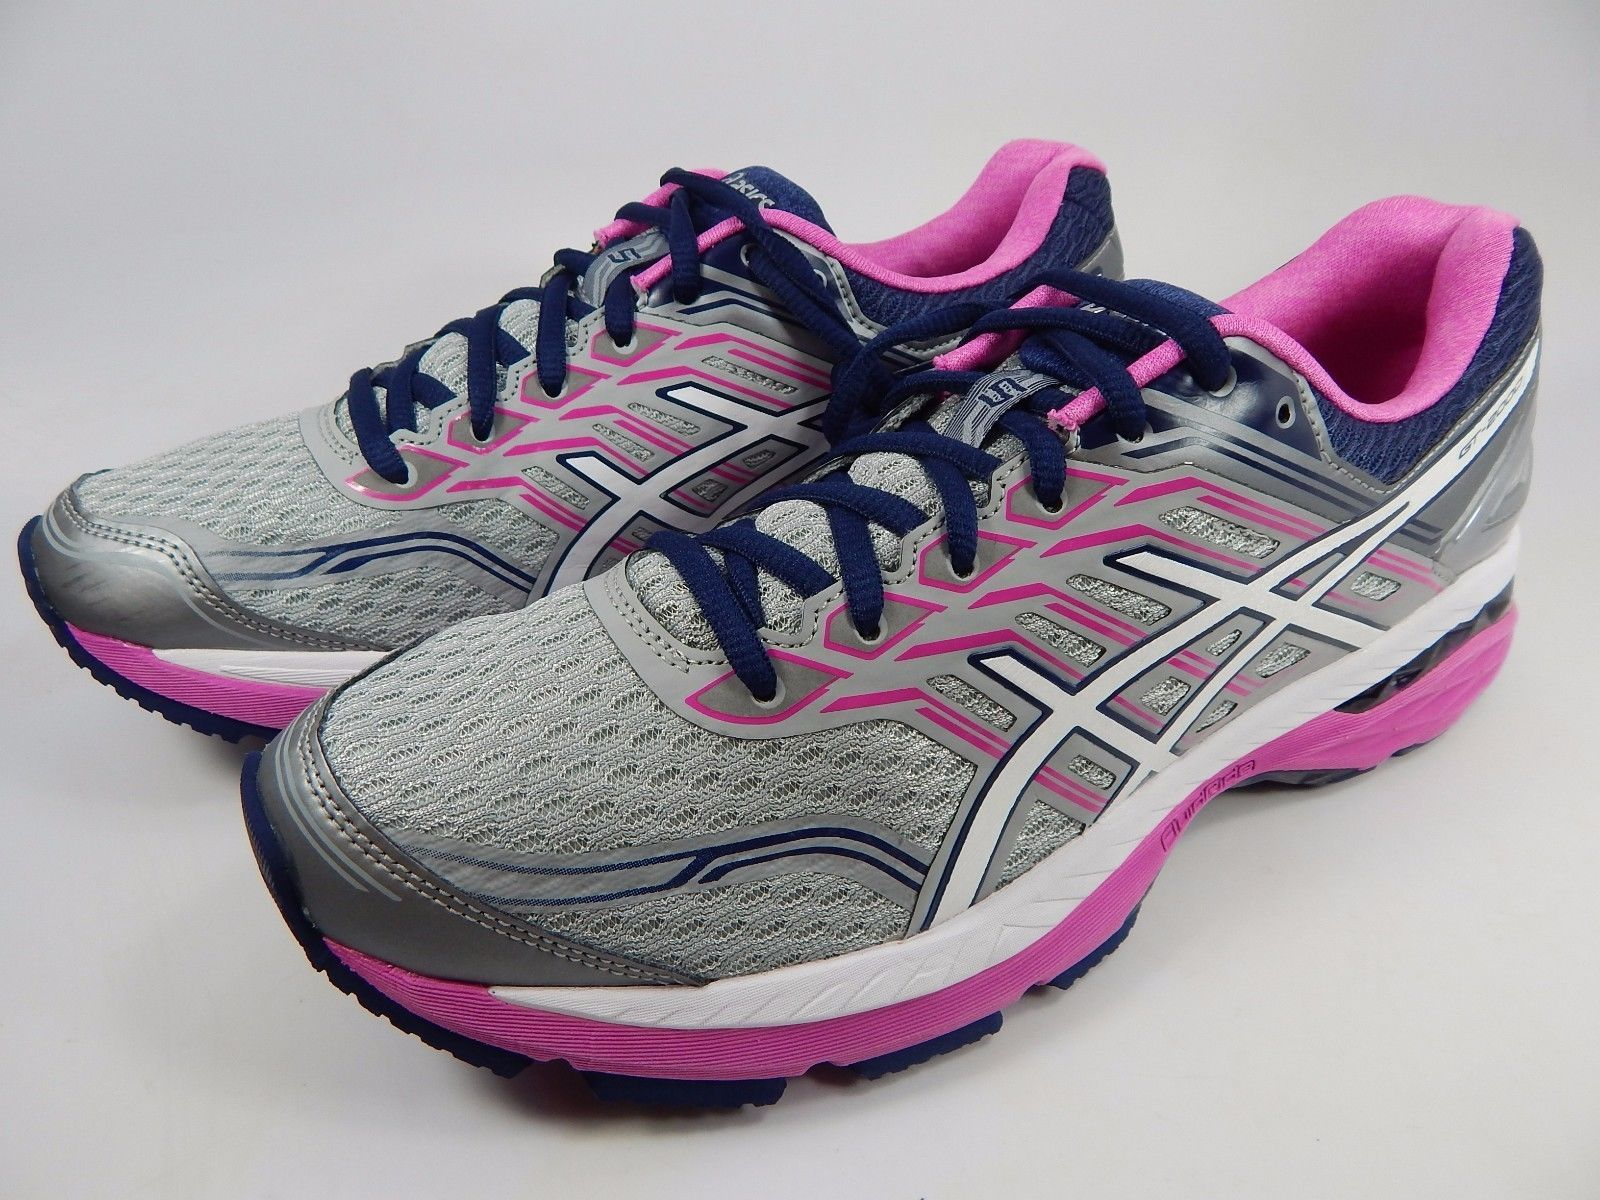 Asics GT 2000 v 5 Women's Running Shoes Size US 10 2A NARROW EU 42 Silver T760N